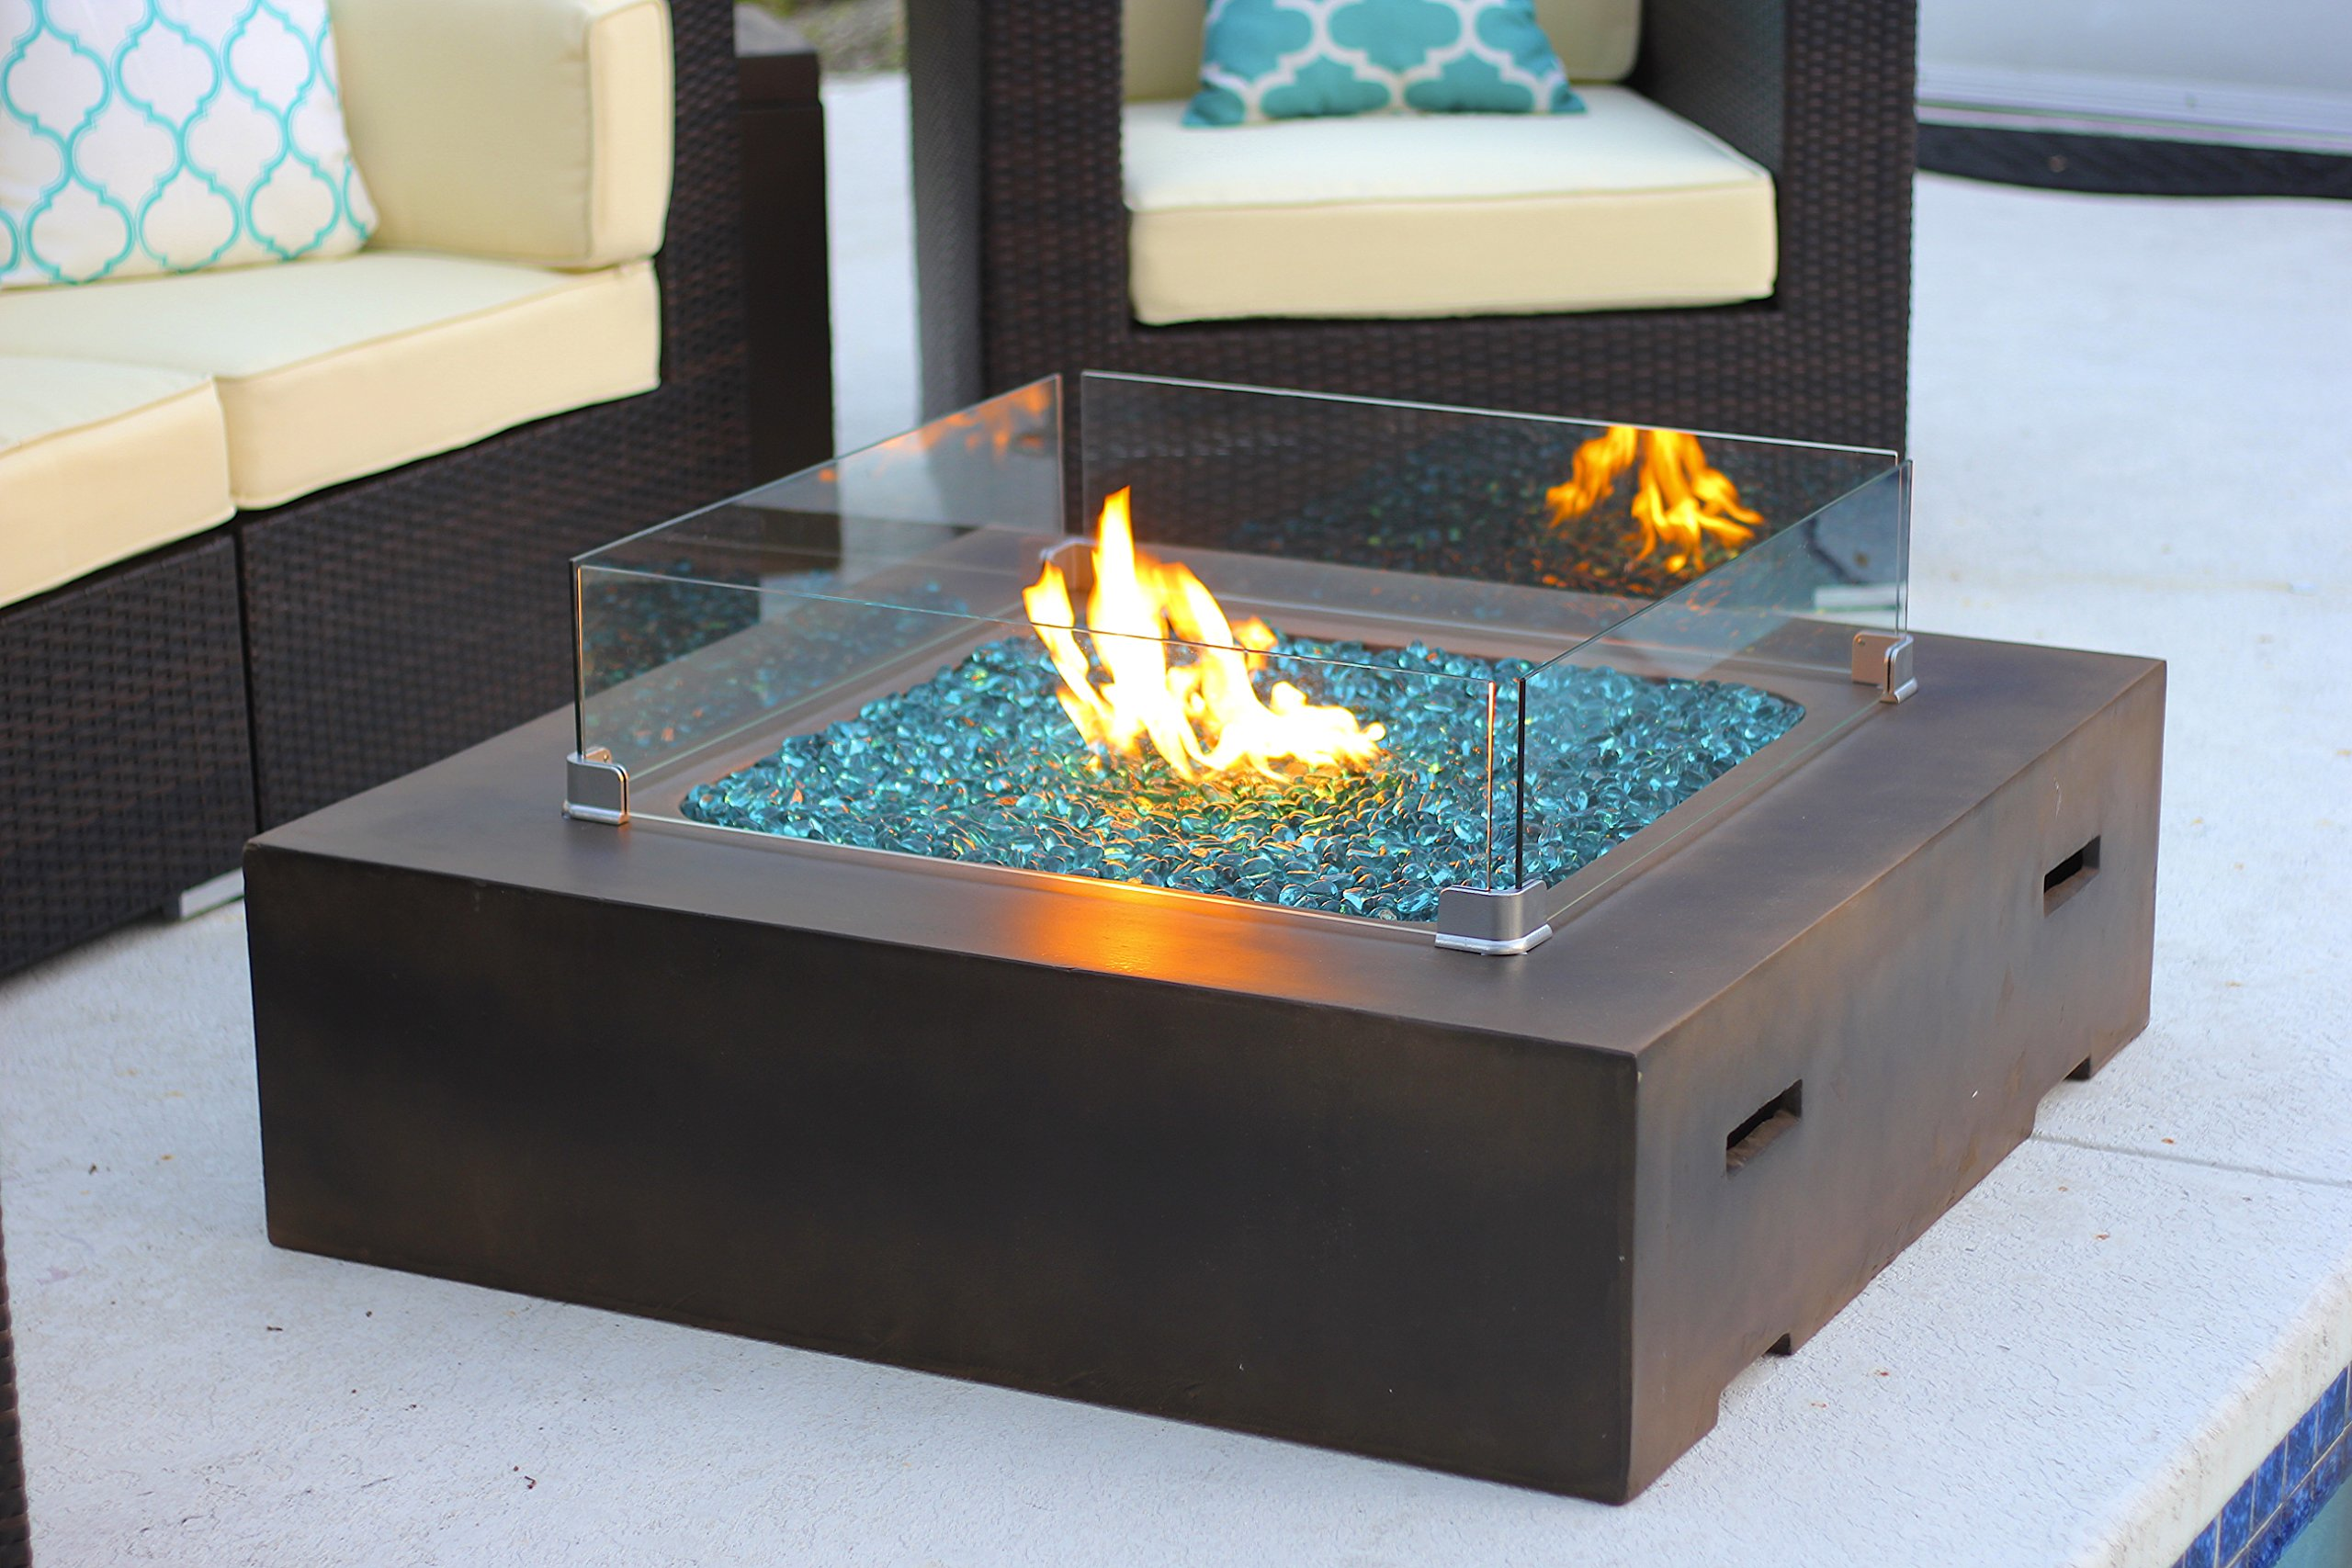 AKOYA Outdoor Essentials 42'' x 42'' Square Modern Concrete Fire Pit Table w/Glass Guard and Crystals in Brown (Caribbean Blue) by AKOYA Outdoor Essentials